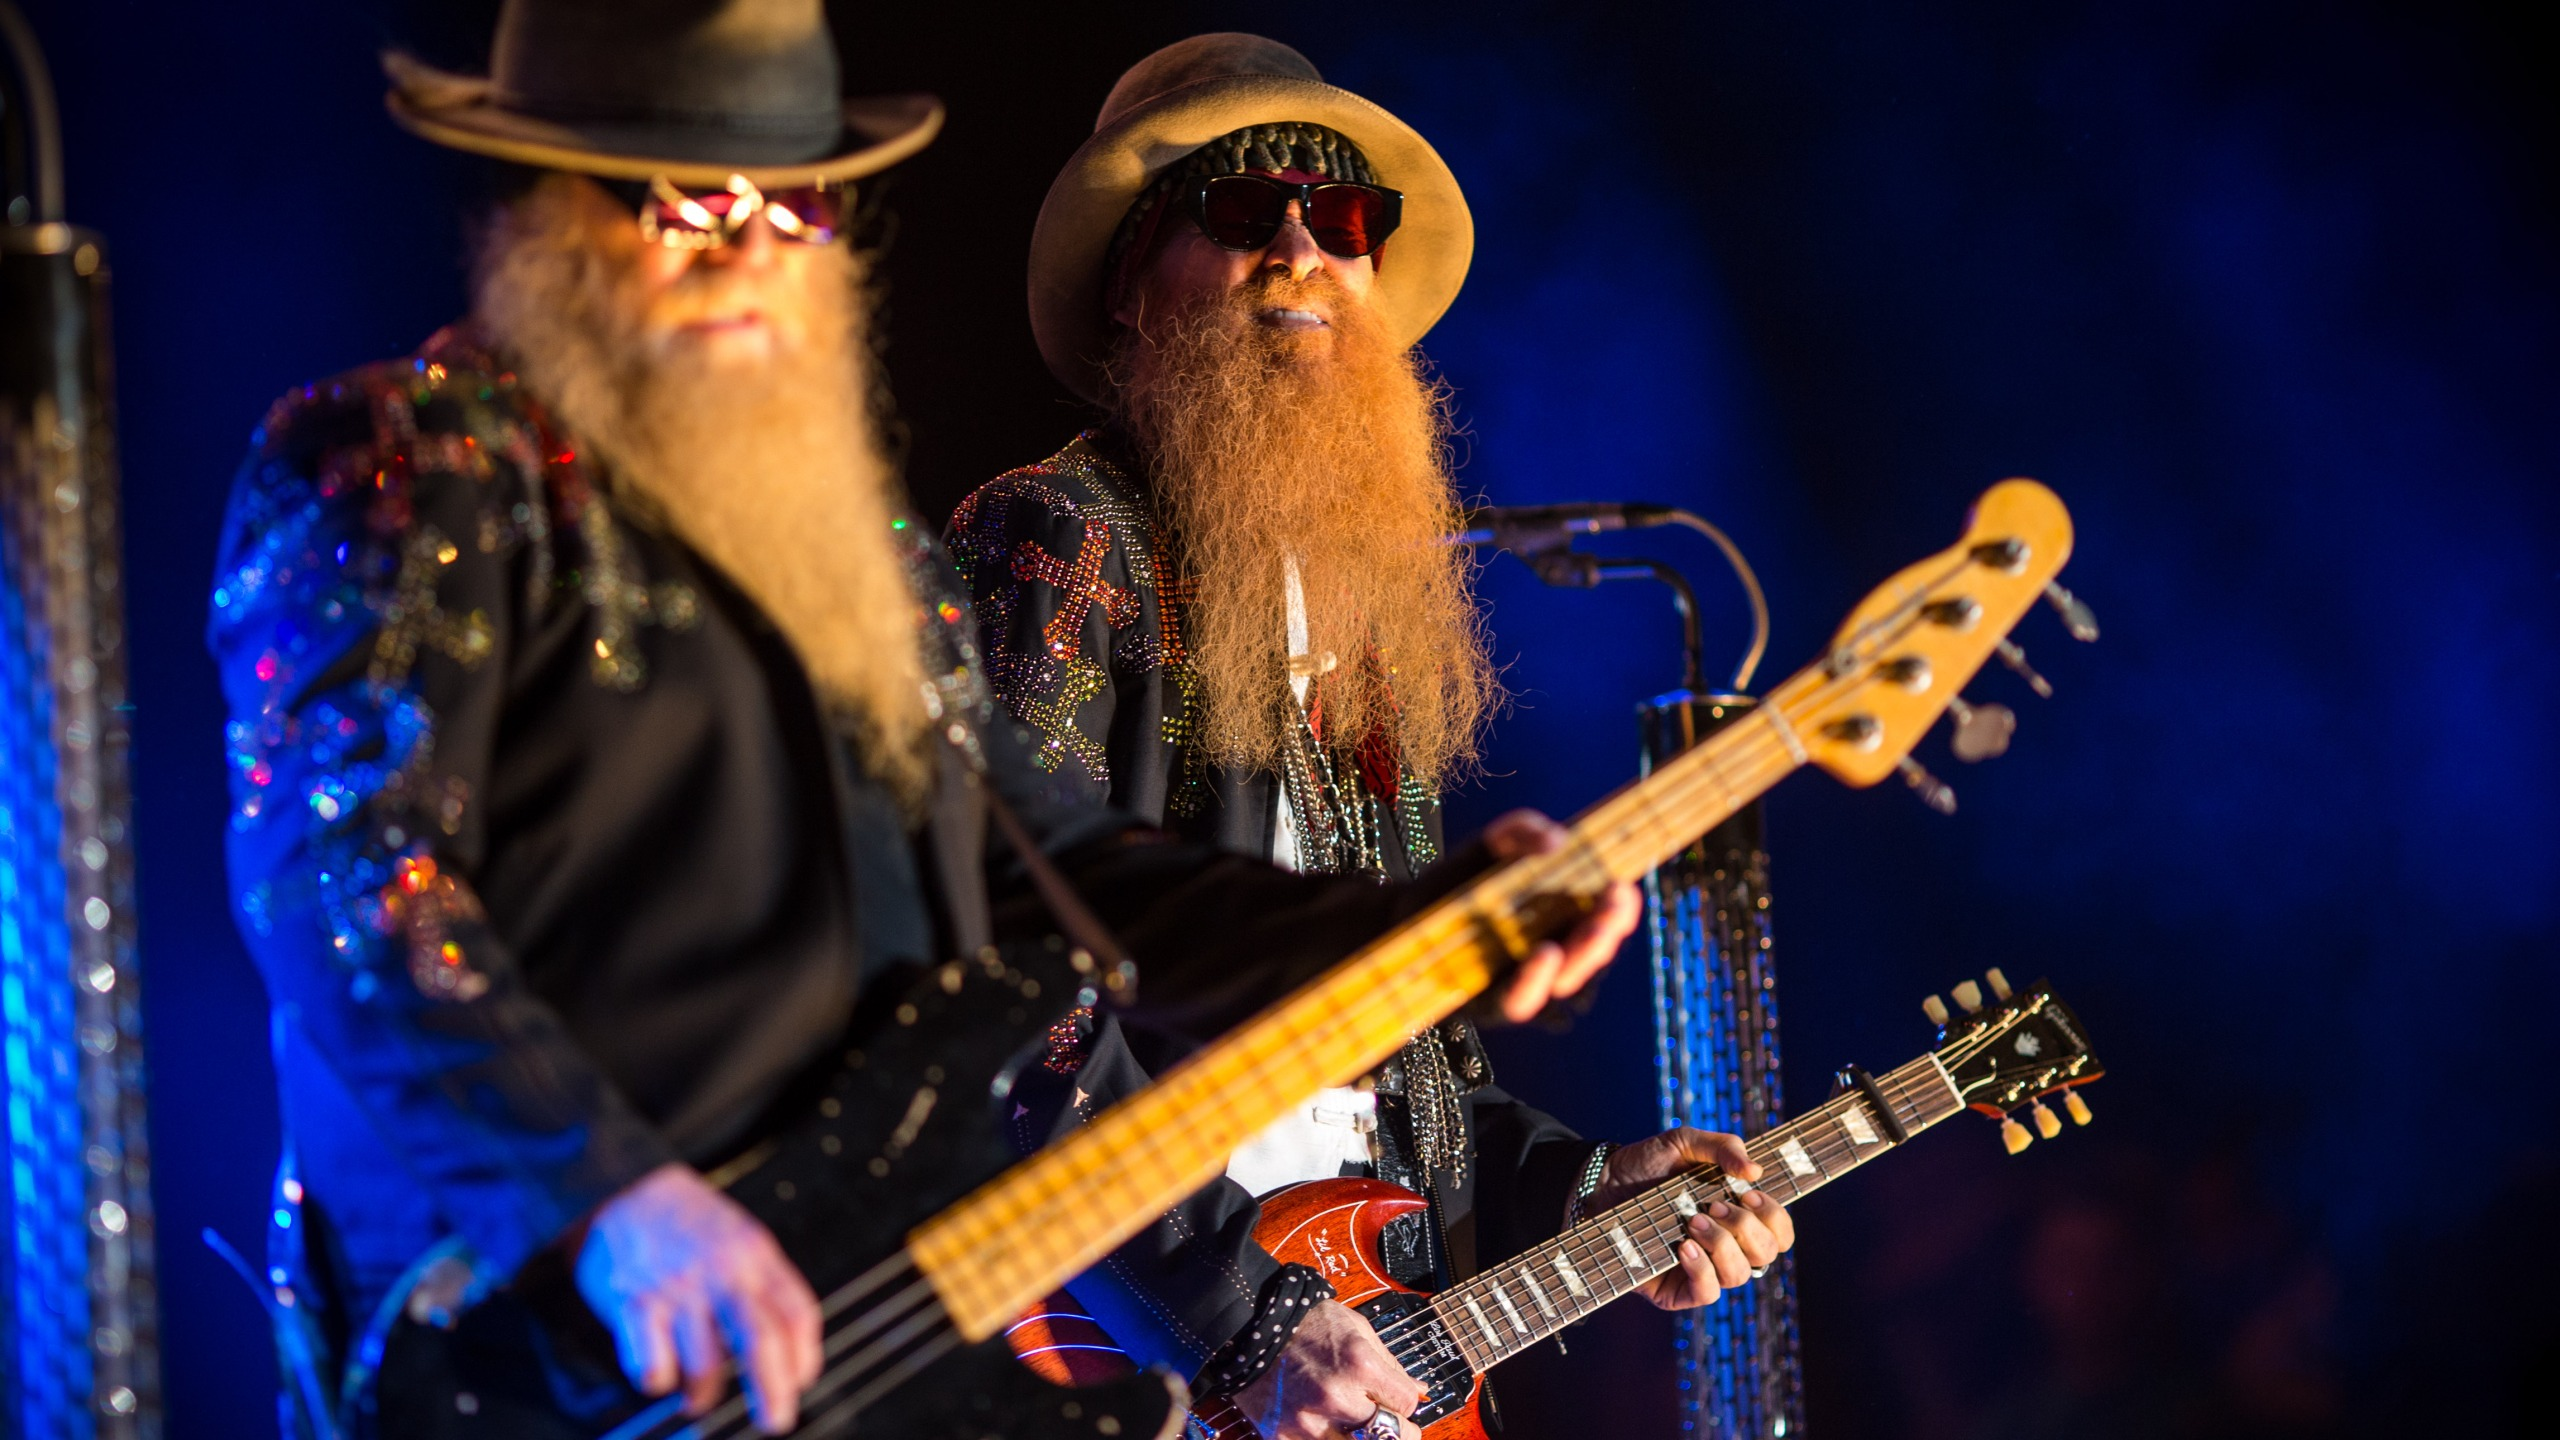 ZZ Top to perform at the Amphitheater